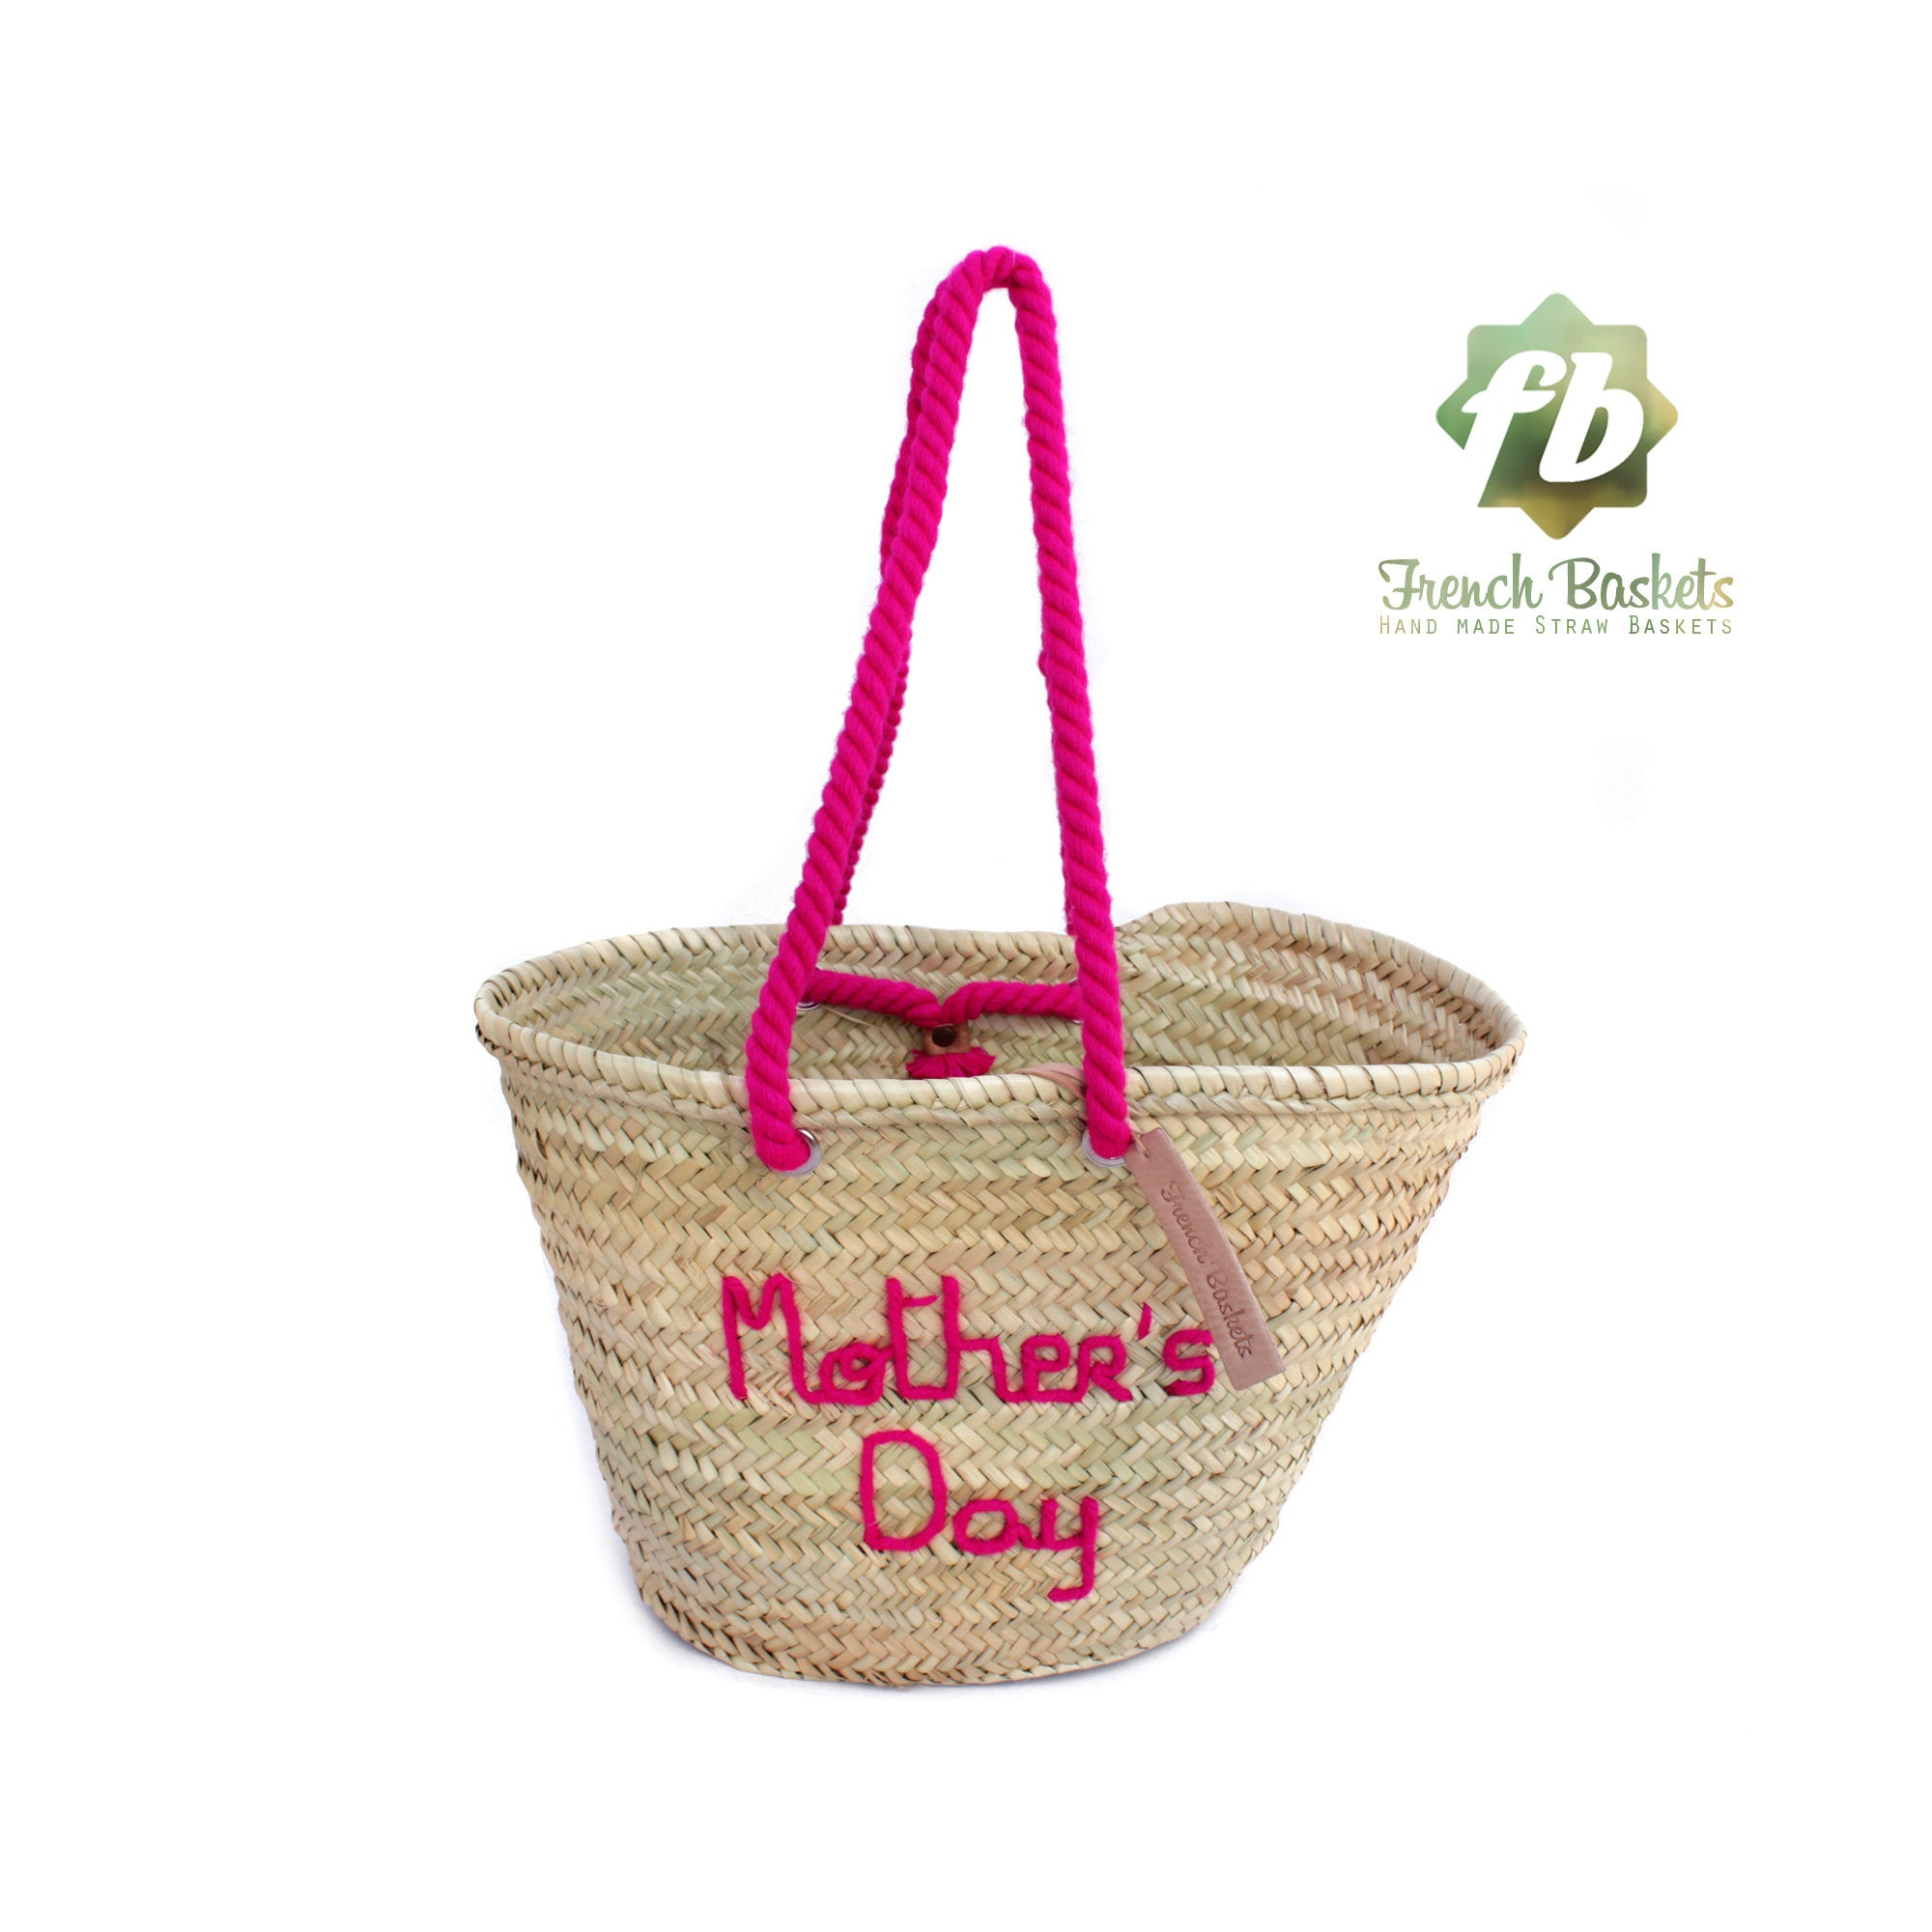 Customized Mother's Day gifts straw bag personalized french baskets